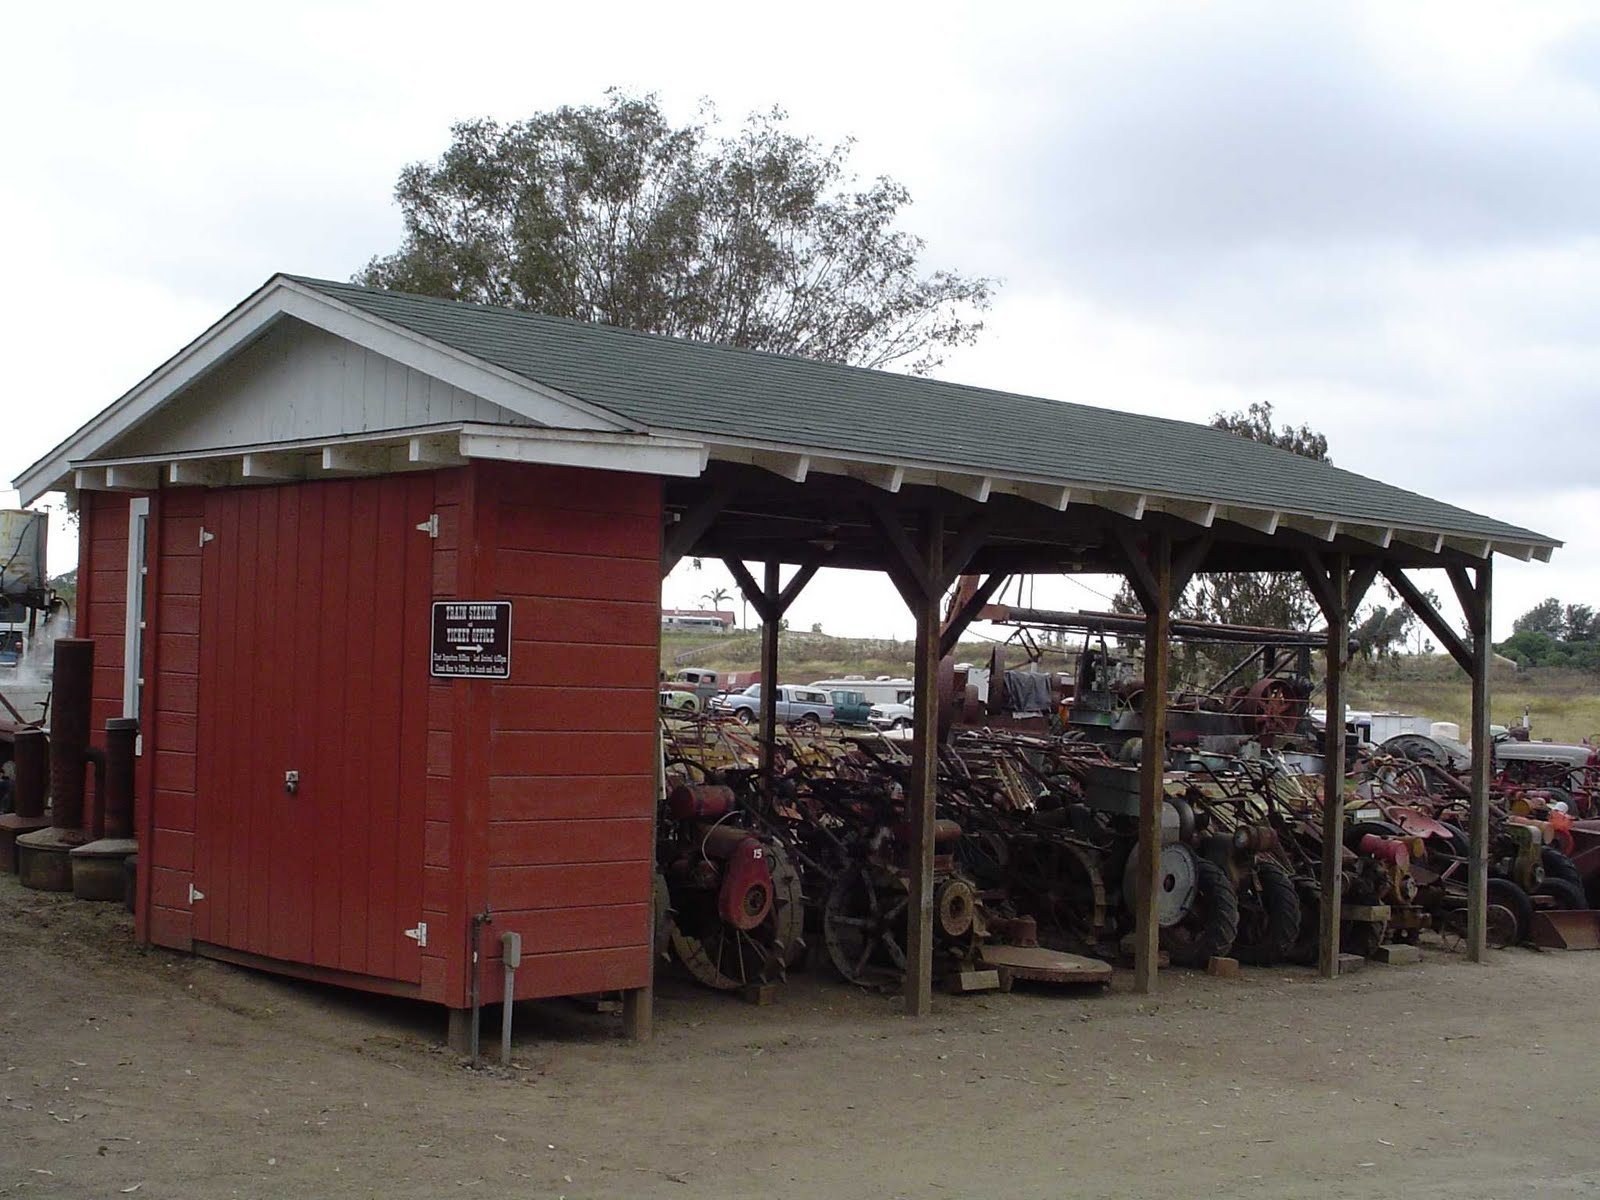 Easy Building Shed And Garage: Tractor Shed Pictures | Tractor Shed ...